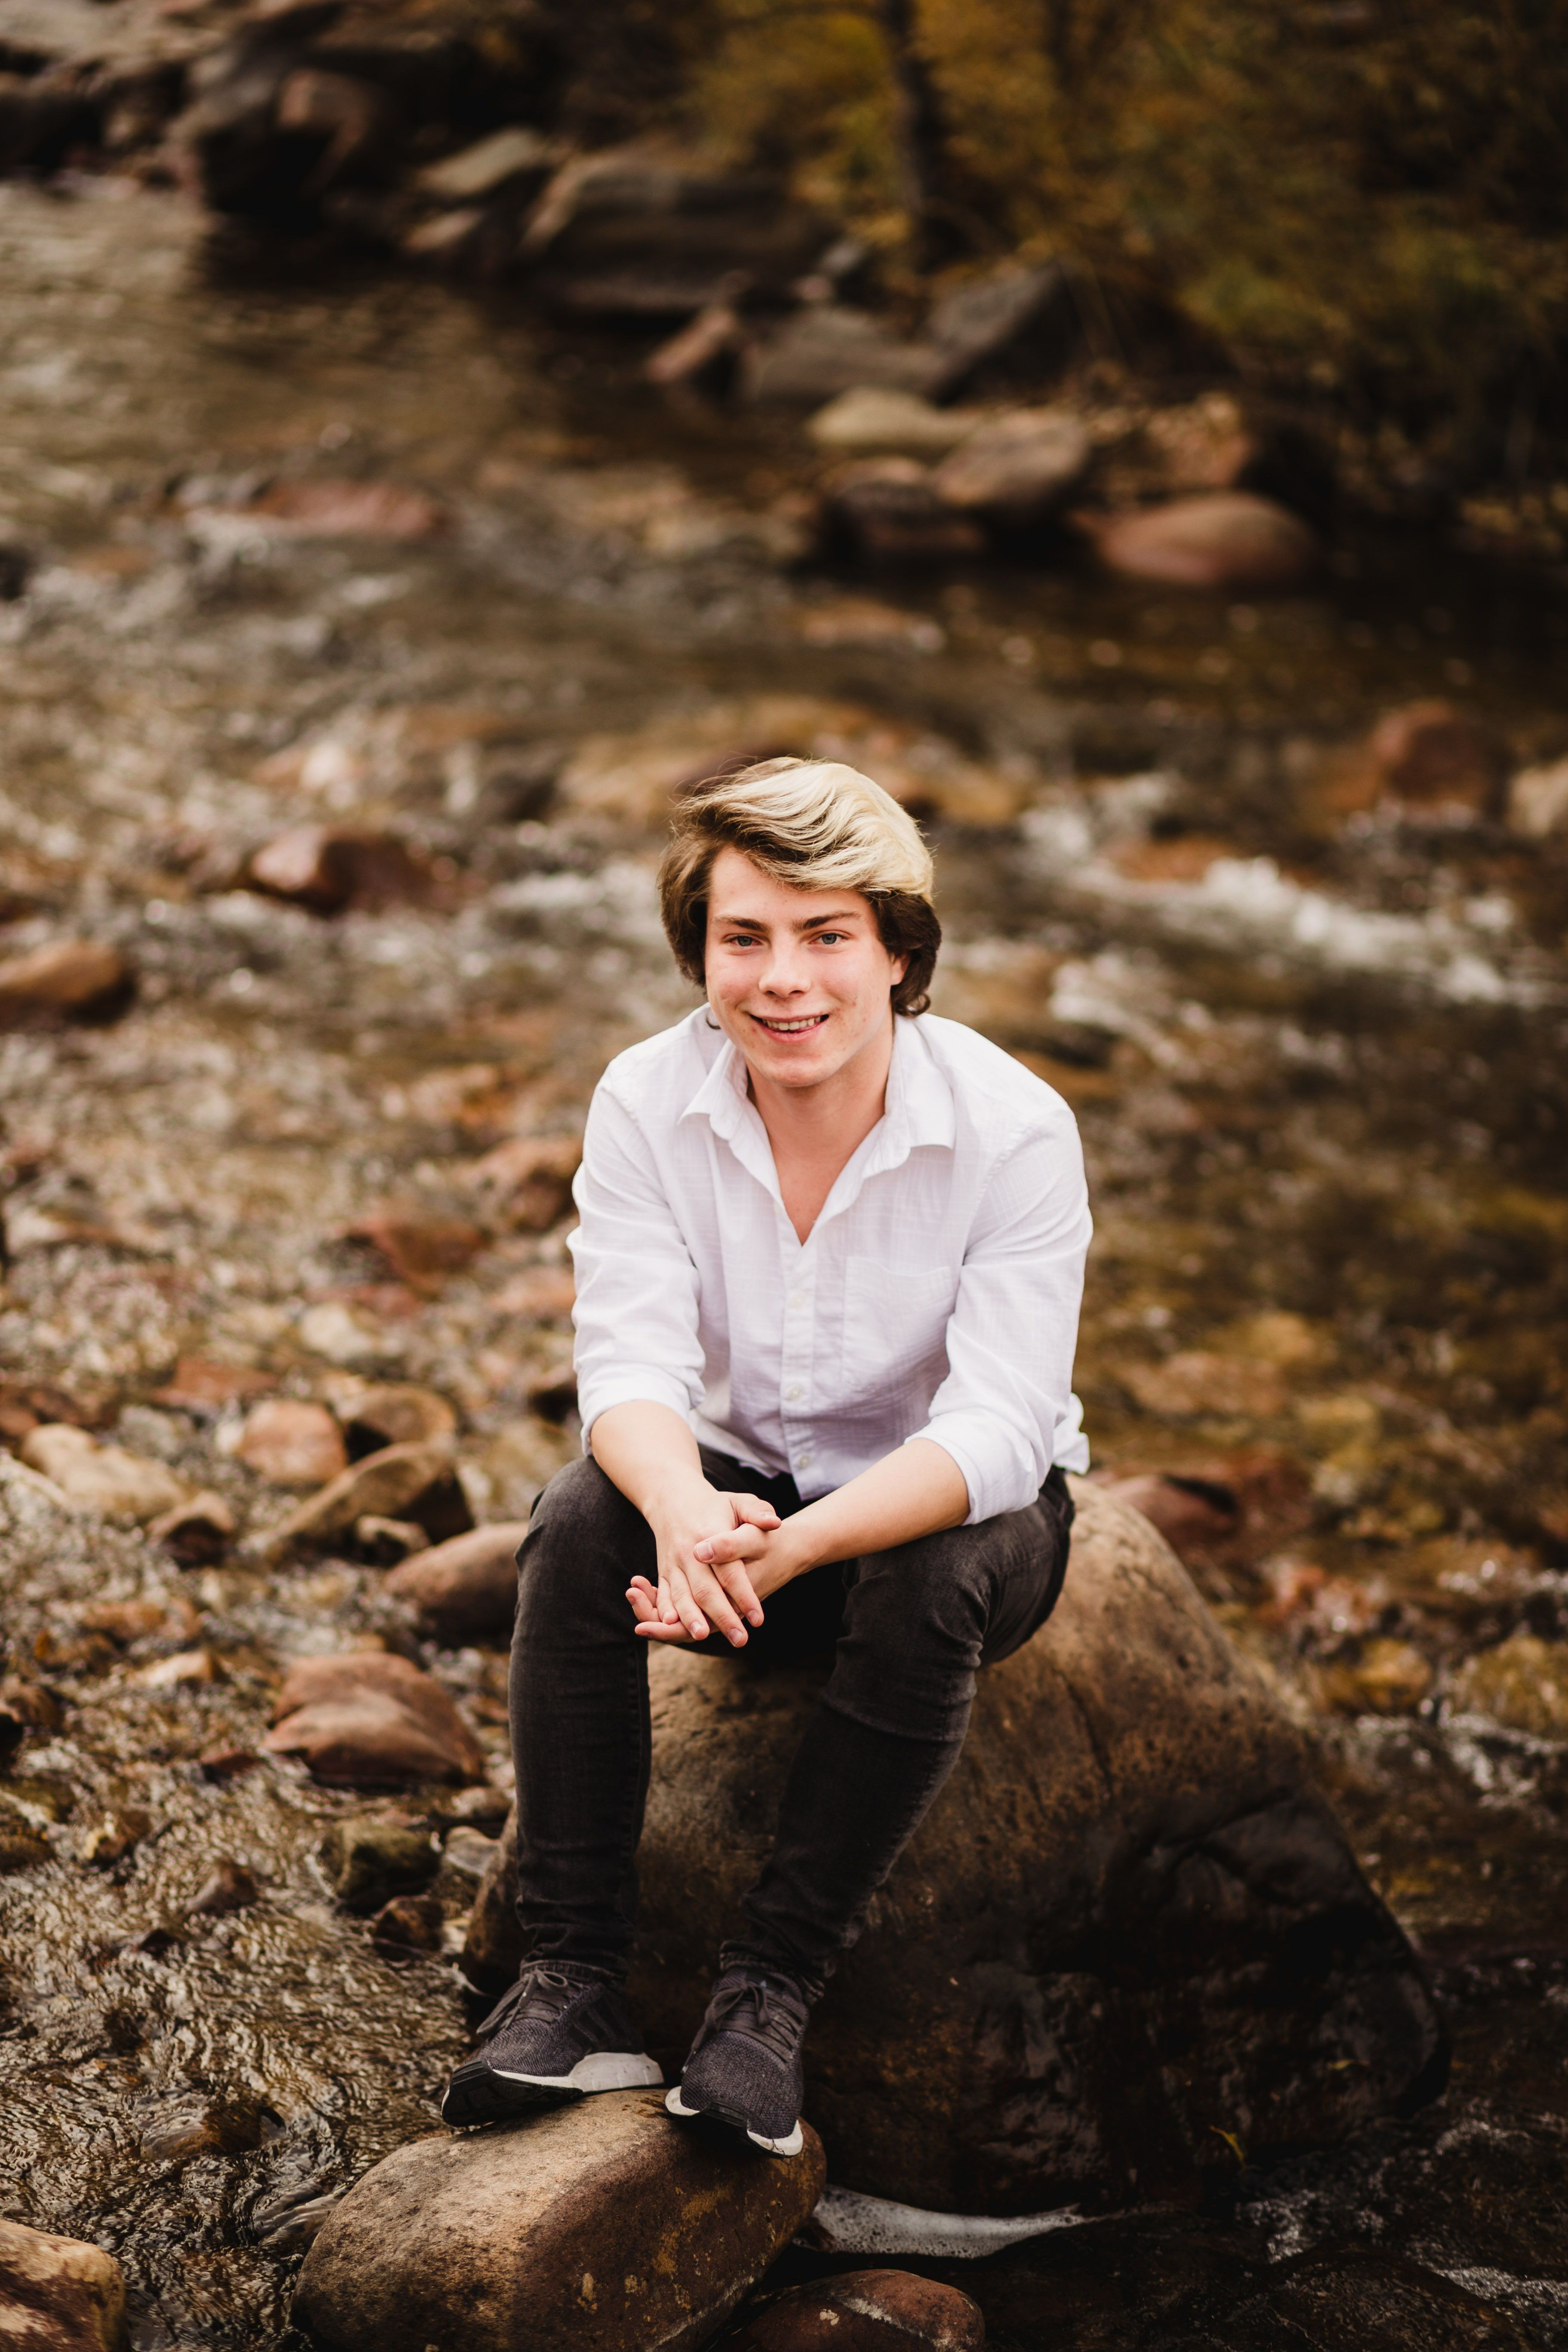 Best Places To Take Senior Pictures In Colorado